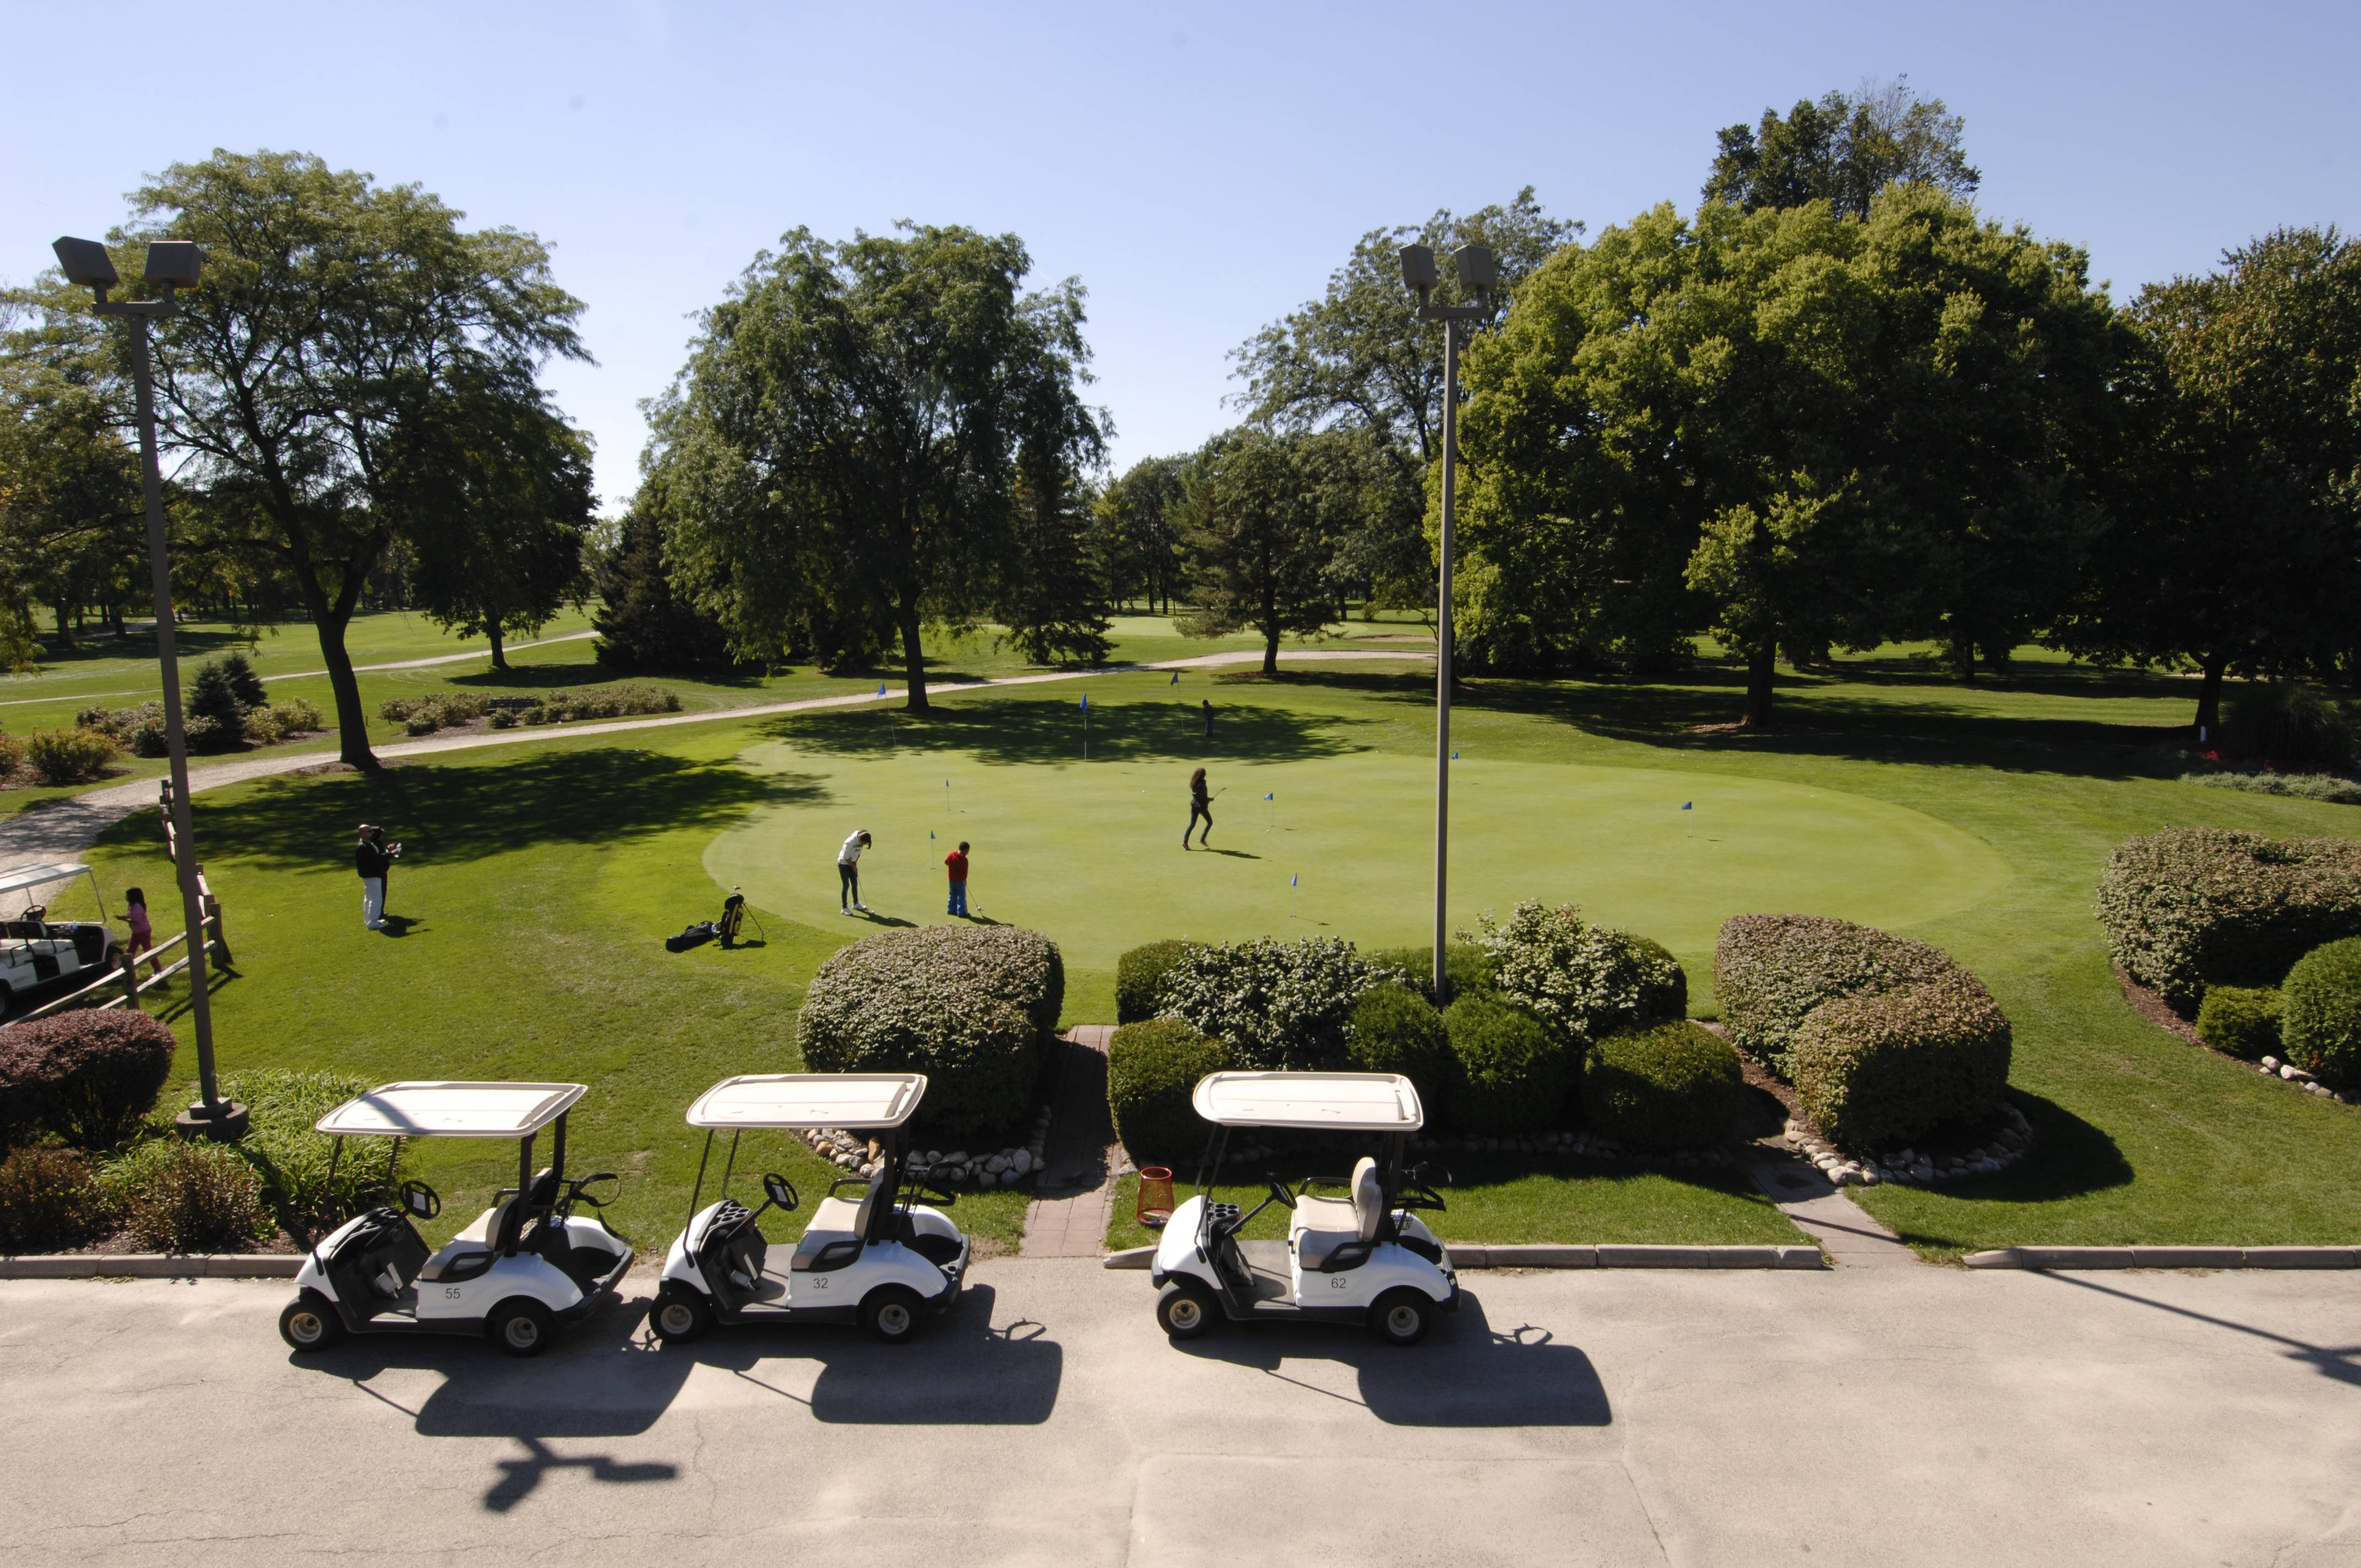 The Bensenville Park District's White Pines Golf Course has lost more than $1.5 million over the past three years. Taxpayers there also subsidize golf losses in several countywide districts.